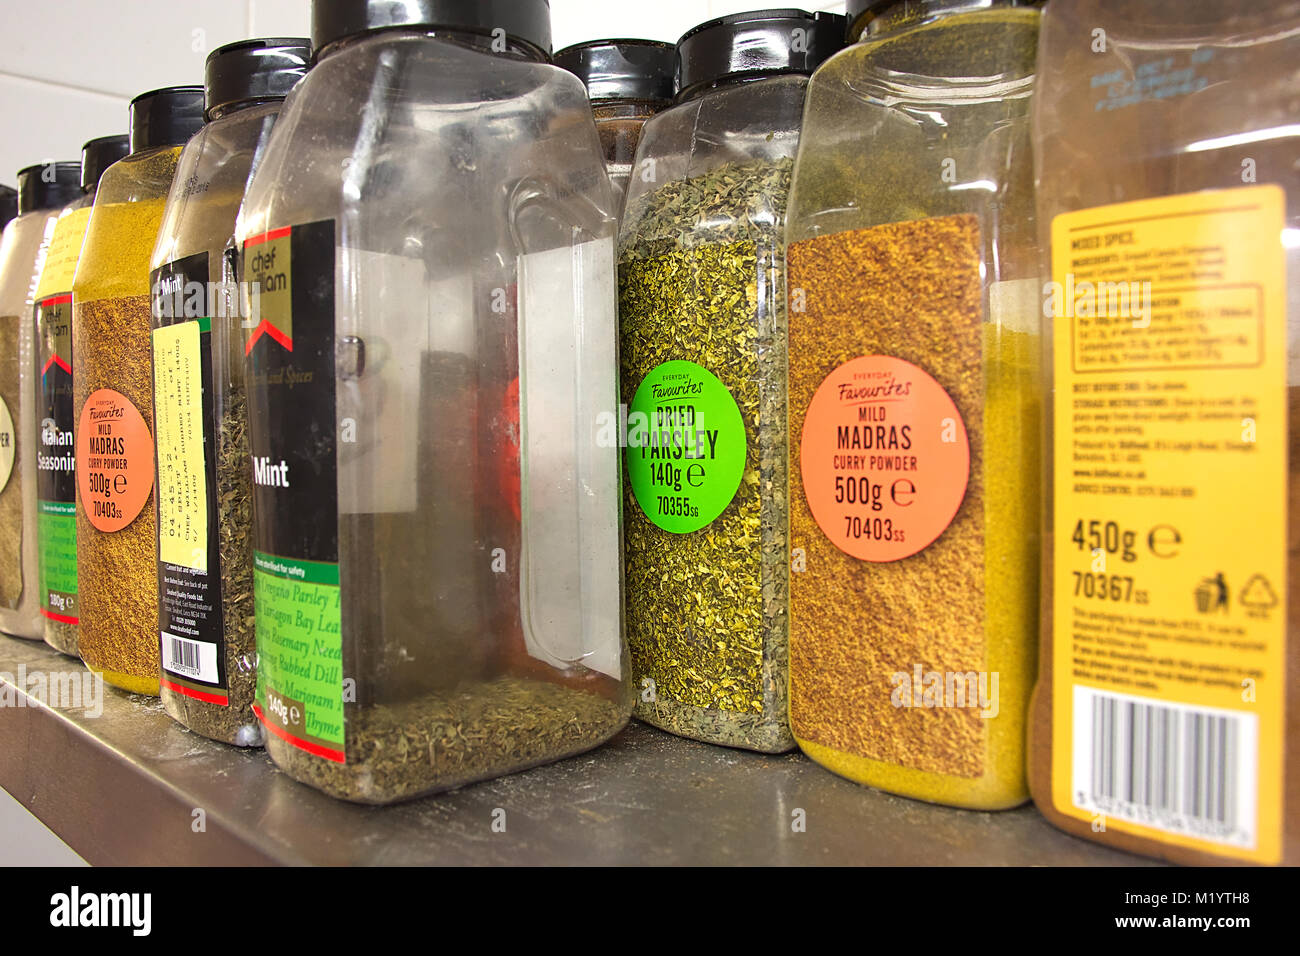 https www alamy com stock photo various spices on shelf in commercial kitchenlarge containers of spices 173330340 html